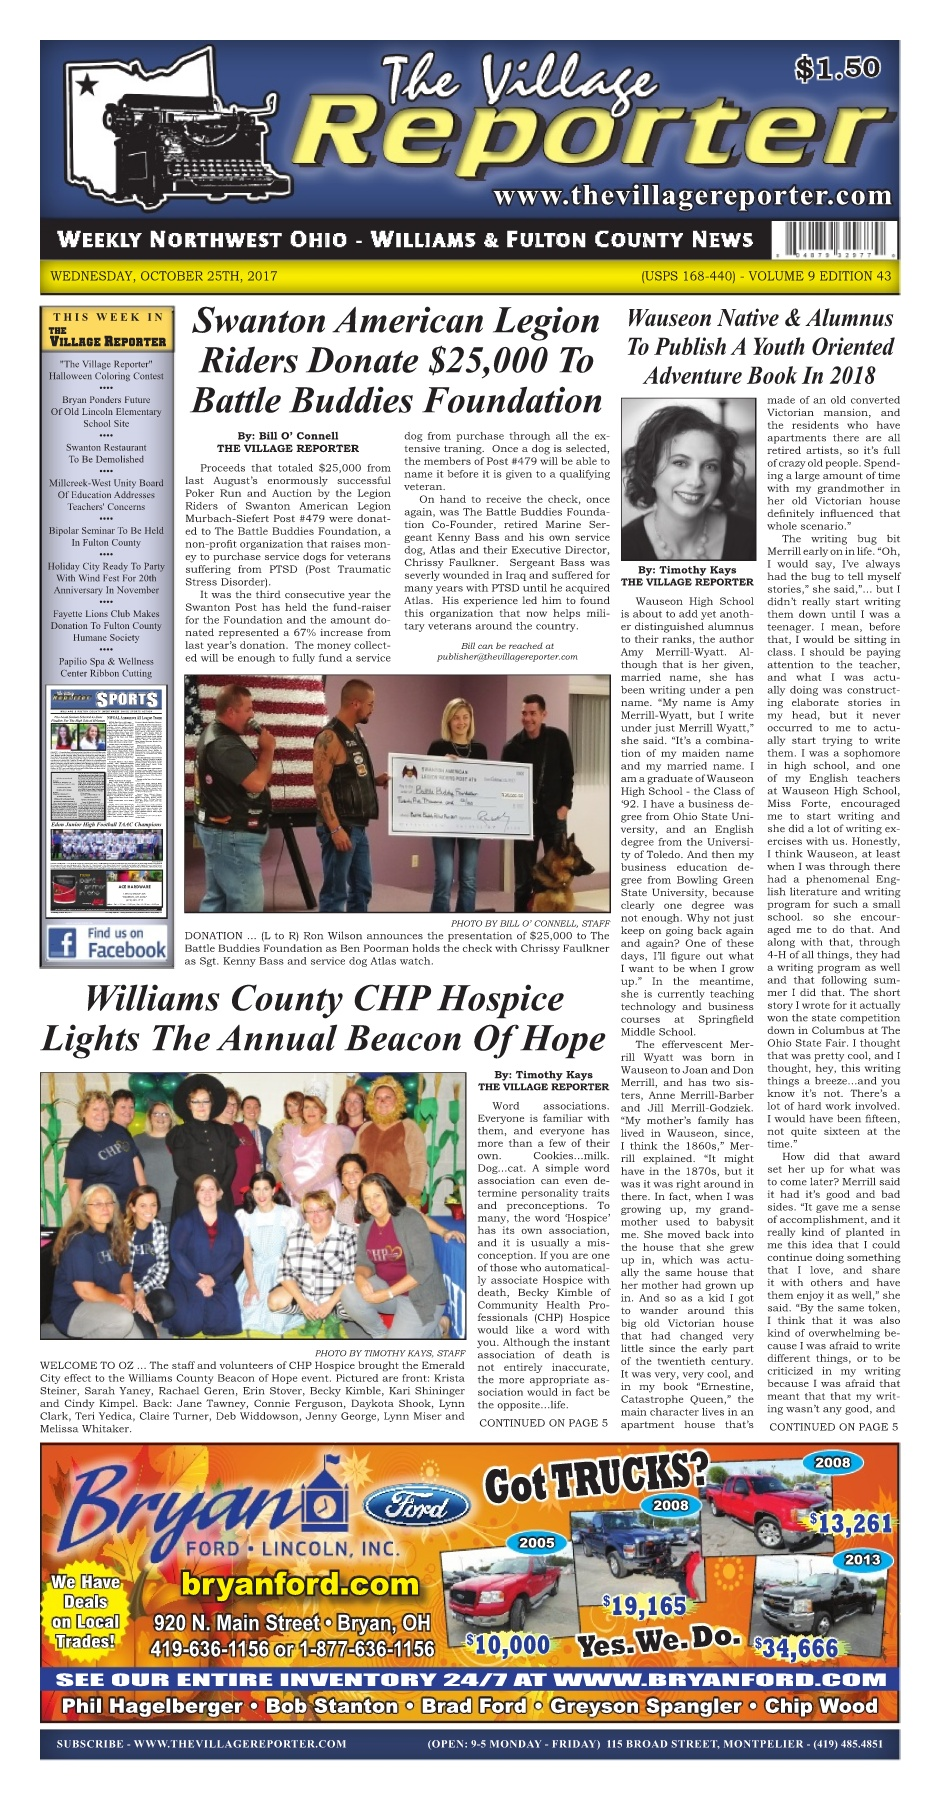 The Village Reporter - October 25th, 2017 Pages 1 - 34